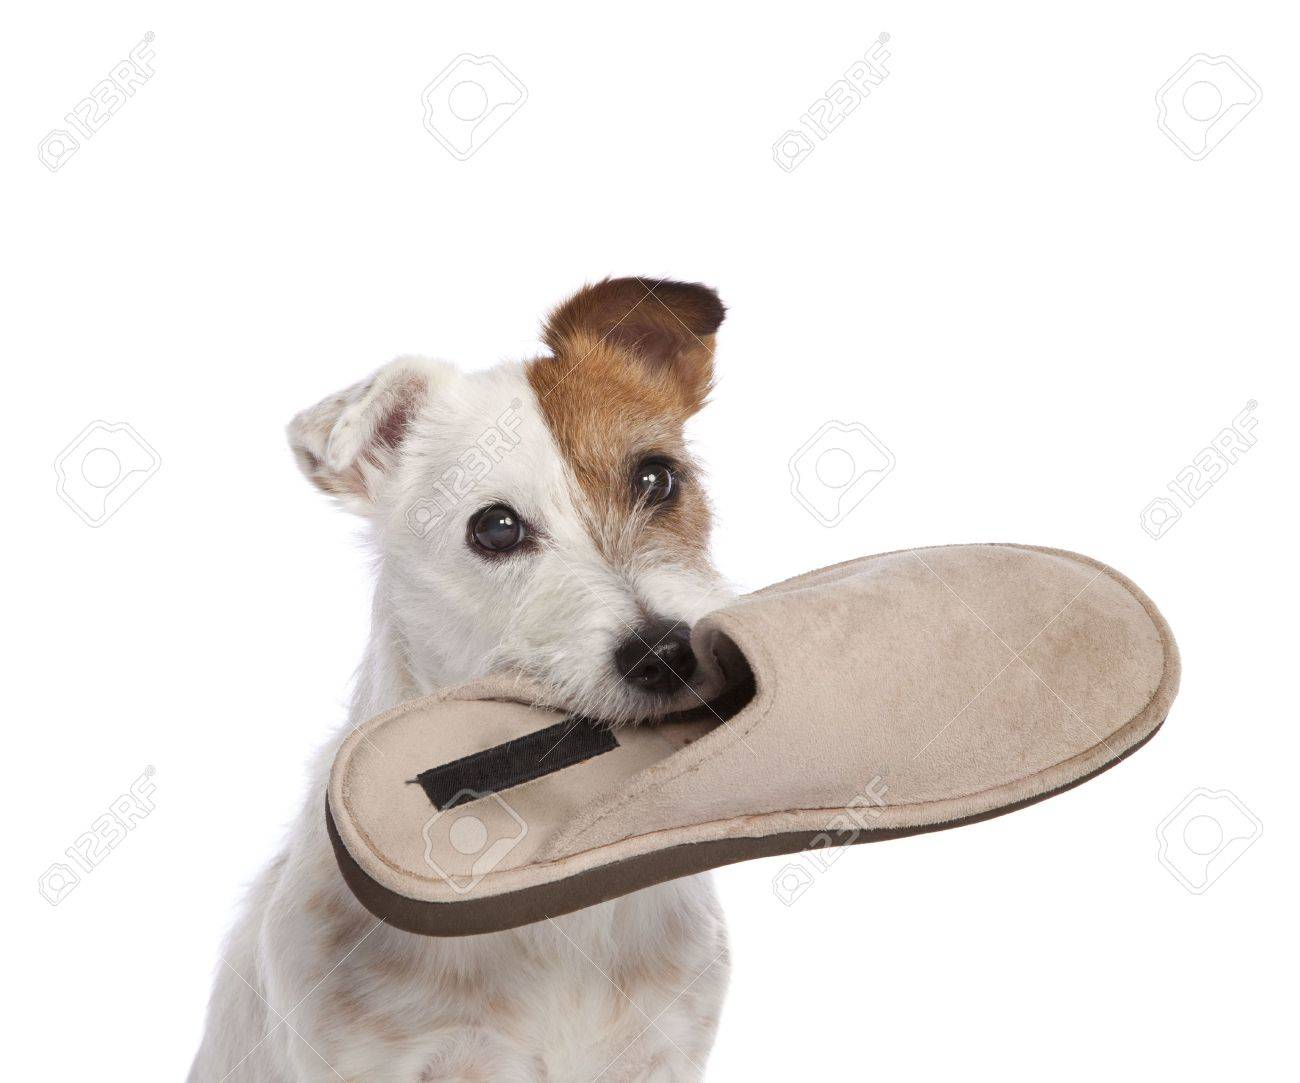 5fa34949587 isolated jack russell terrier holding shoe over white background Stock  Photo - 4916986